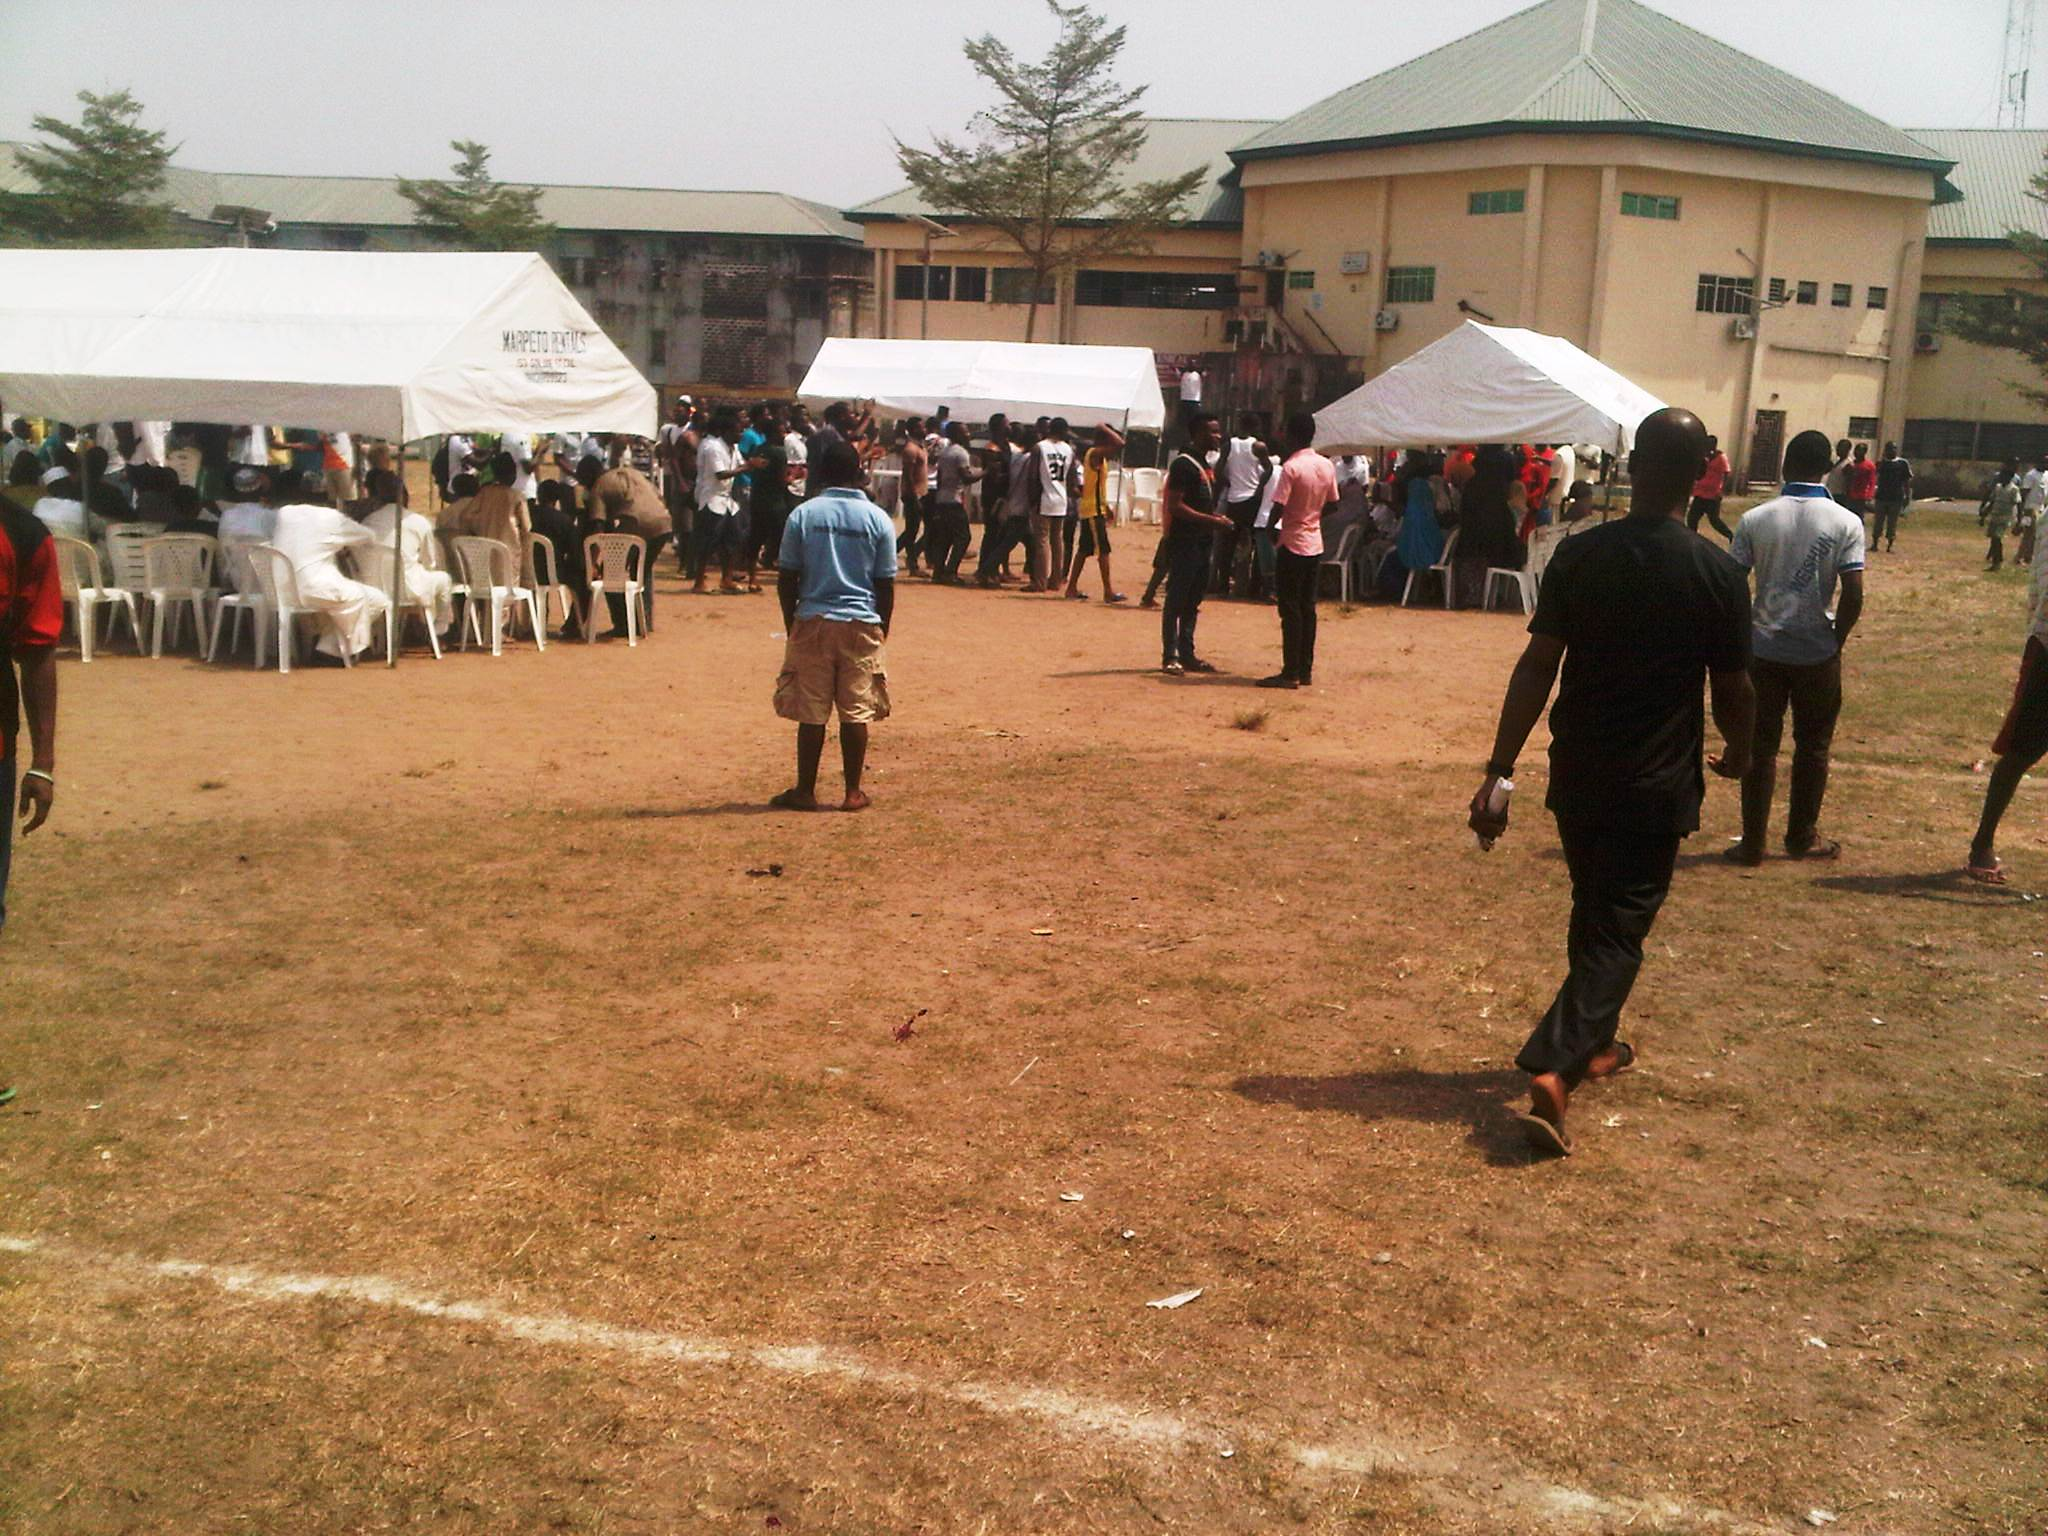 Cross section of students at the event that was disrupted